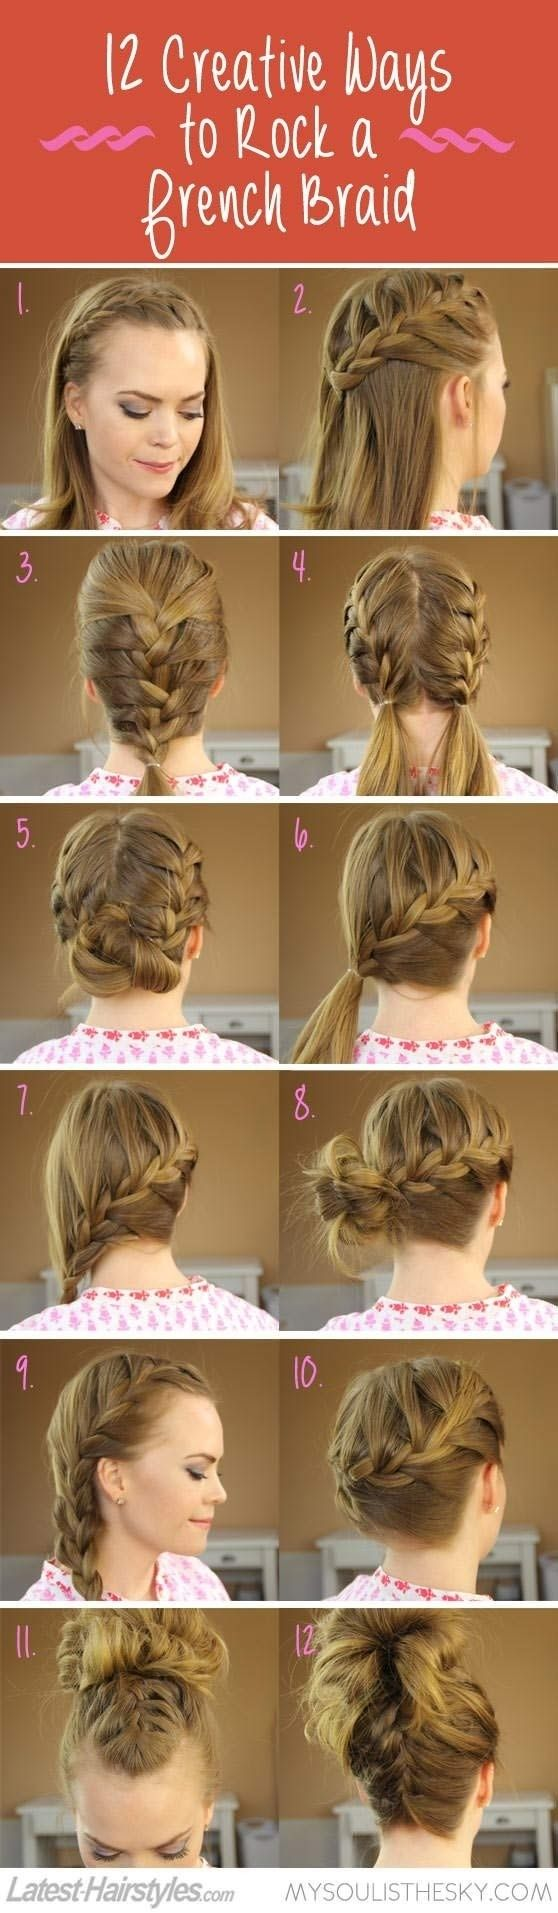 10 Charming Braided Hairstyles Tutorials for Summer | PoPular Haircuts